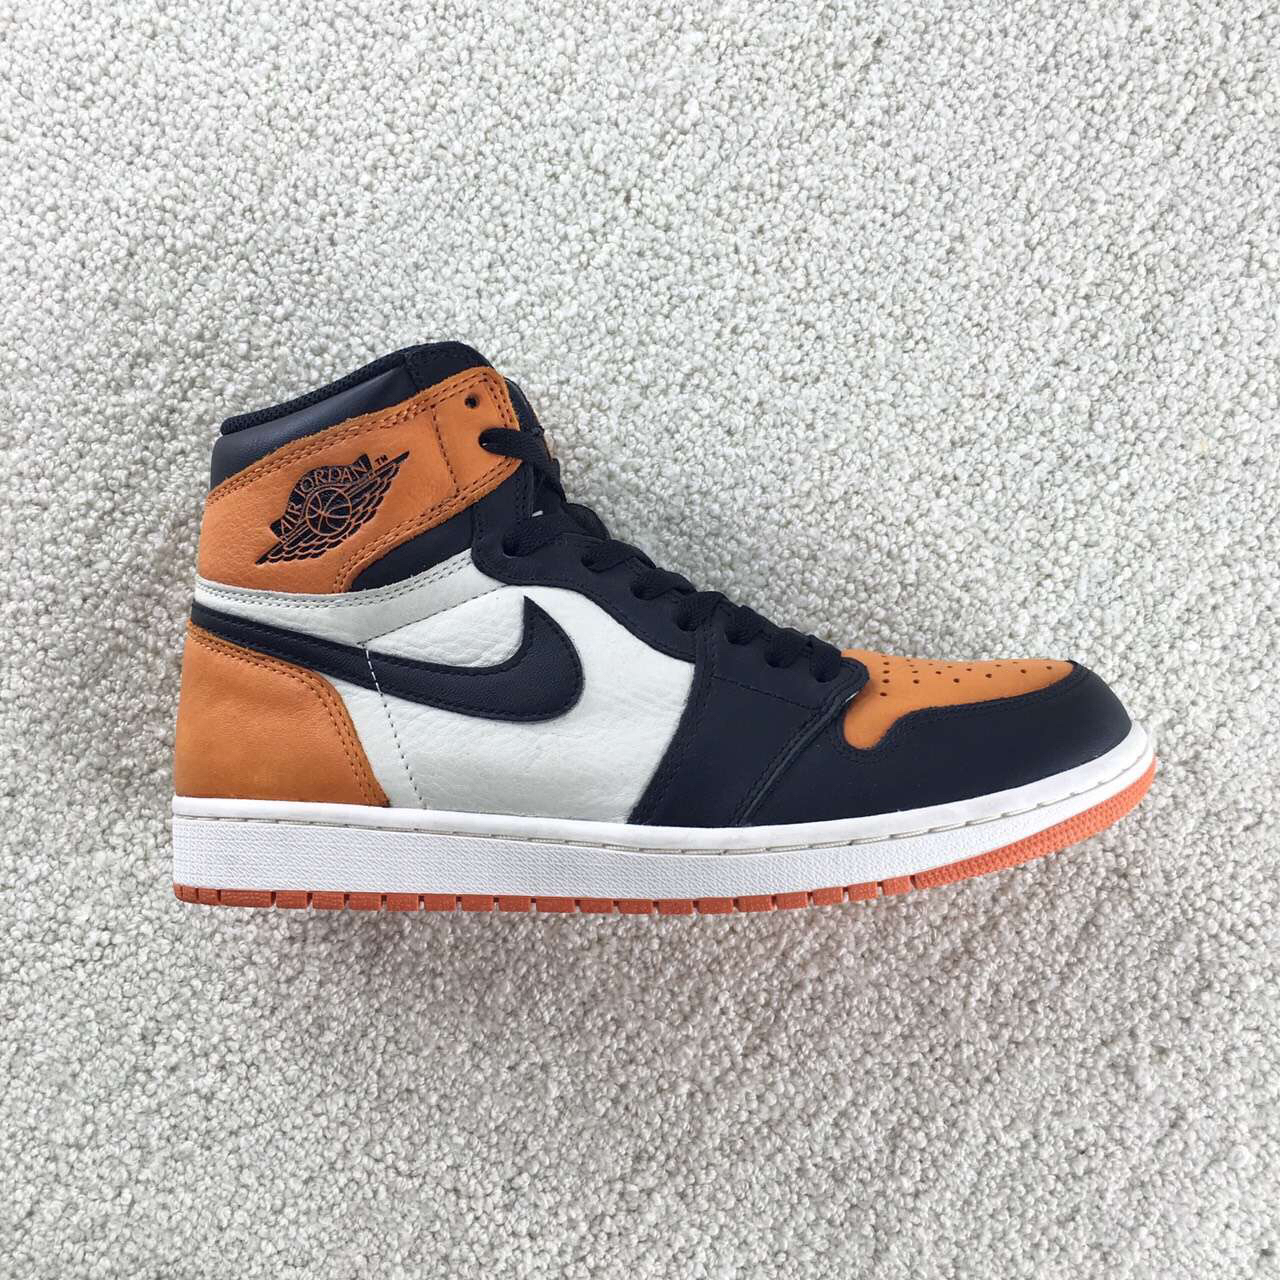 AJ1 Retro OG Shattered Backboar乔1 扣碎篮板篮球鞋 555088-005